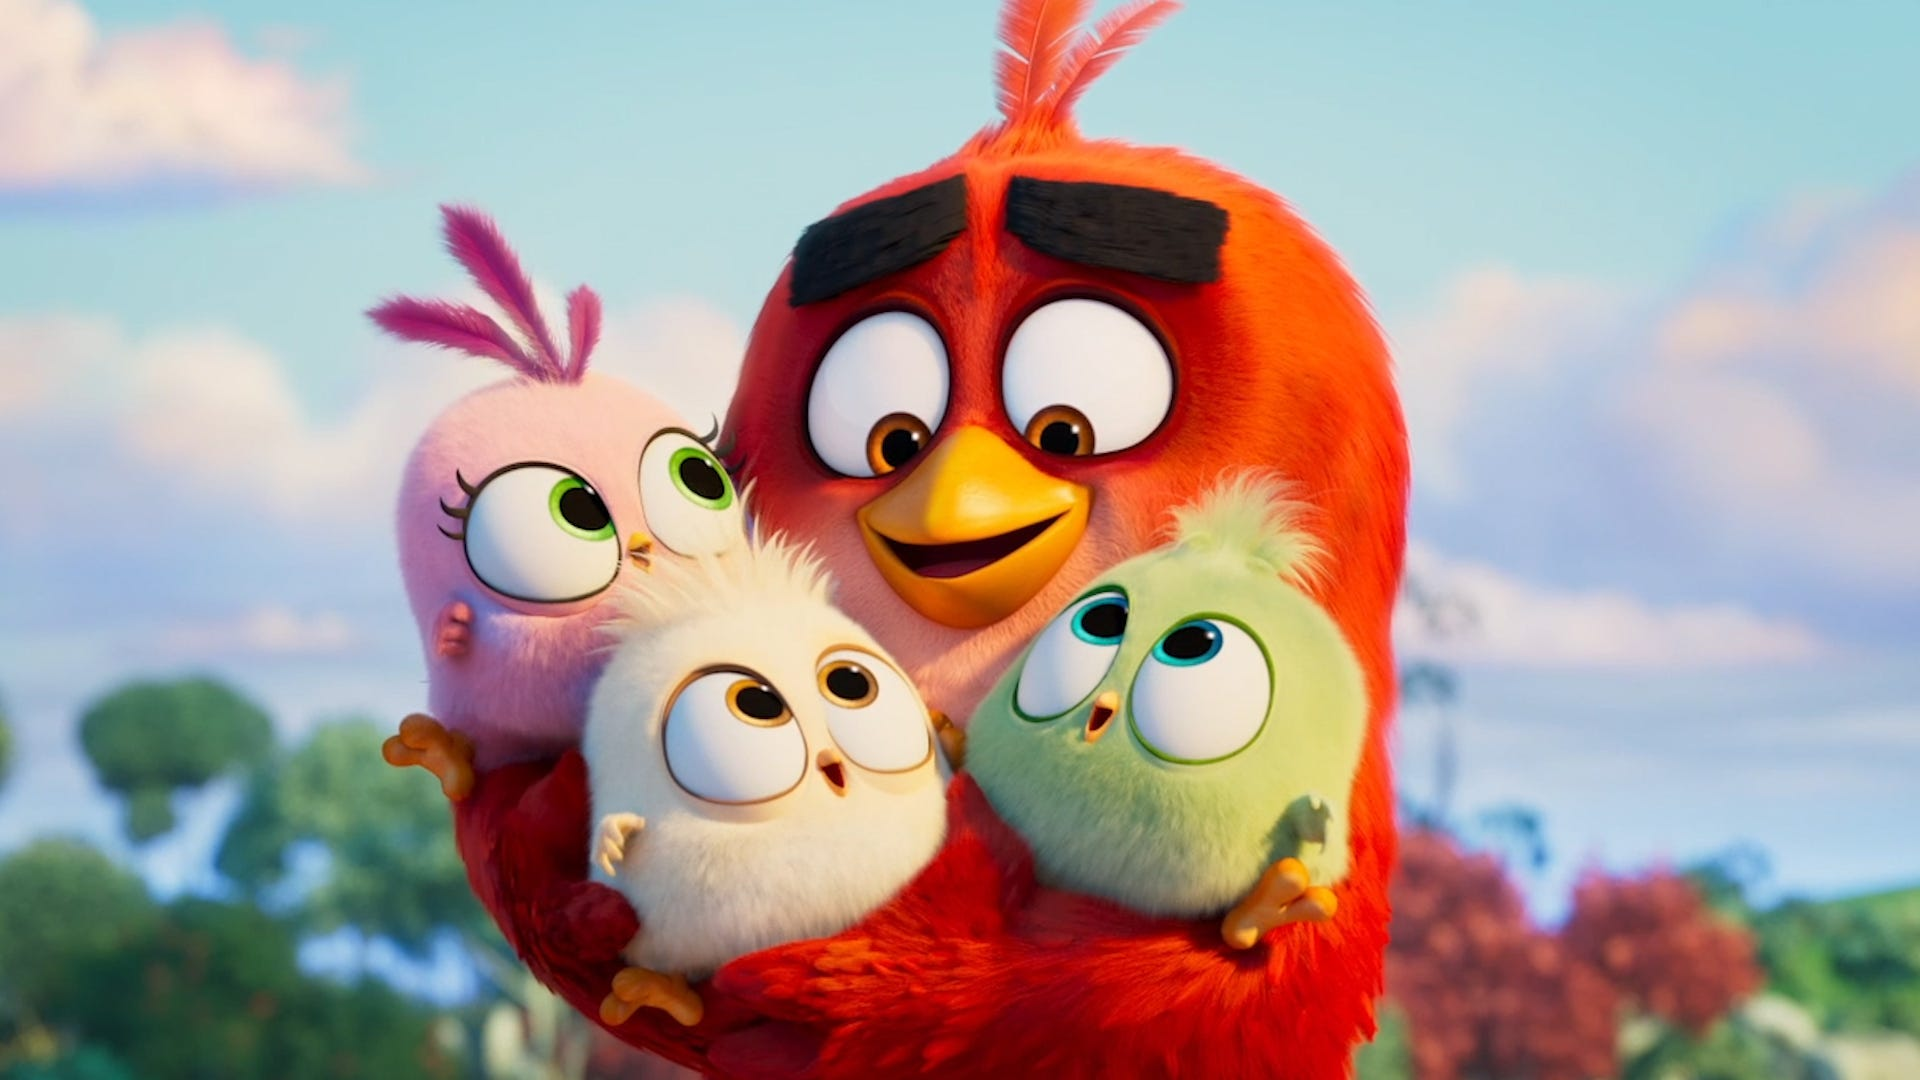 The birds and pigs make an unlikely team in 'Angry Birds Movie 2' trailer